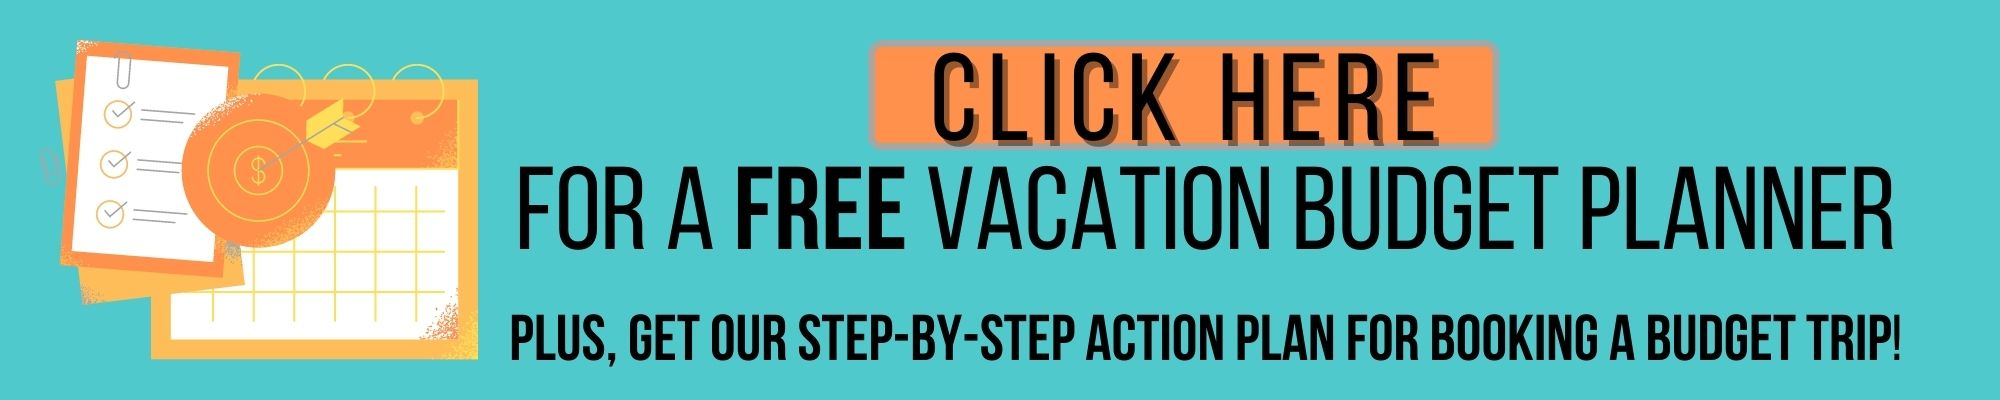 Get a Free Vacation Budget Planner and Action Plan for Budget Trip by JetSettingFools.com